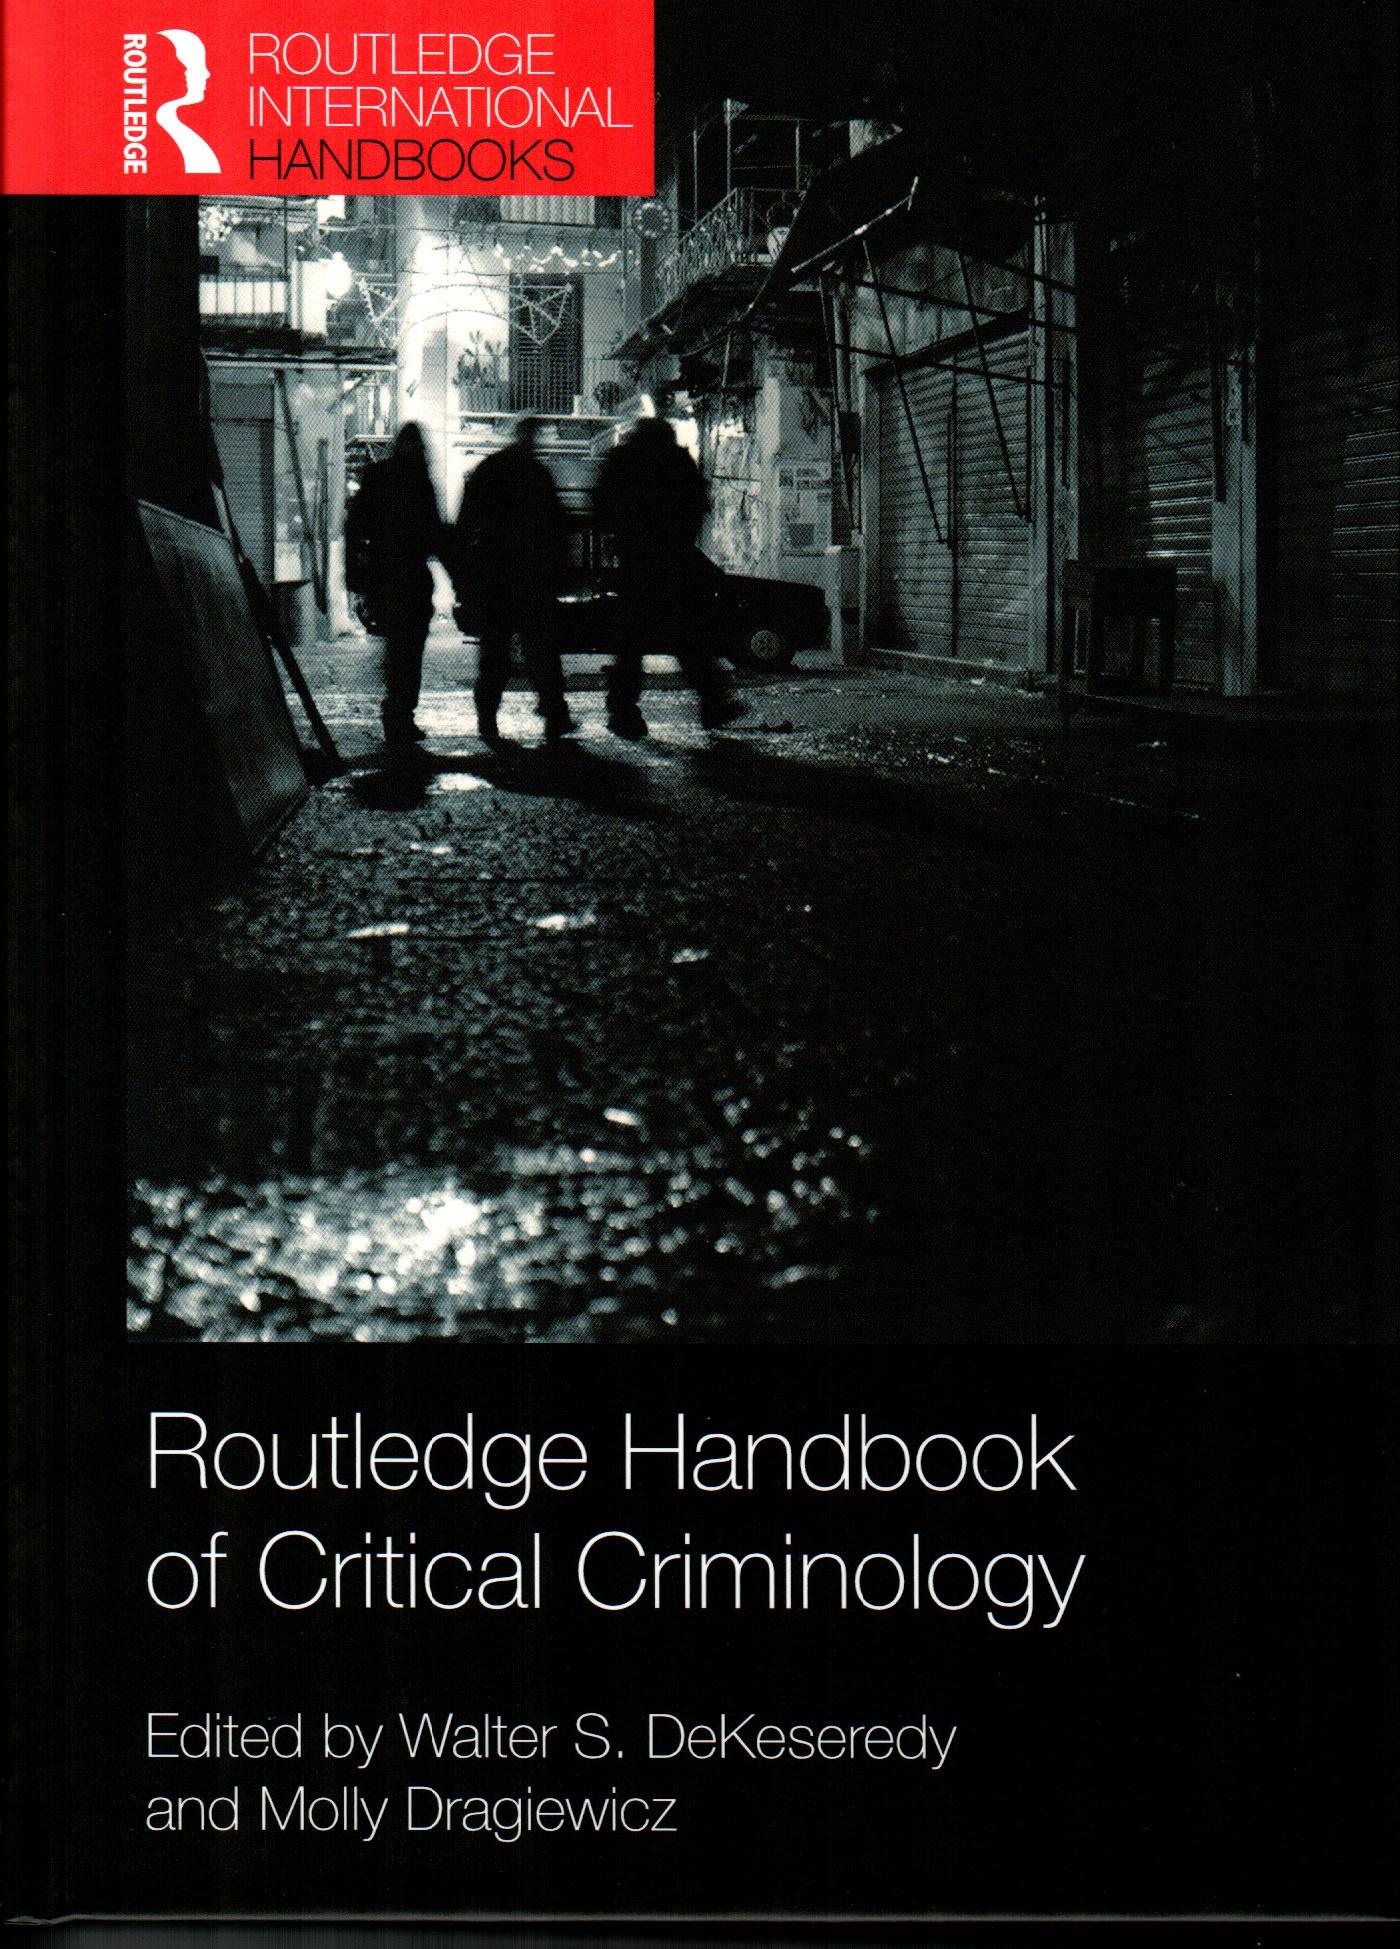 Routledge Criminology